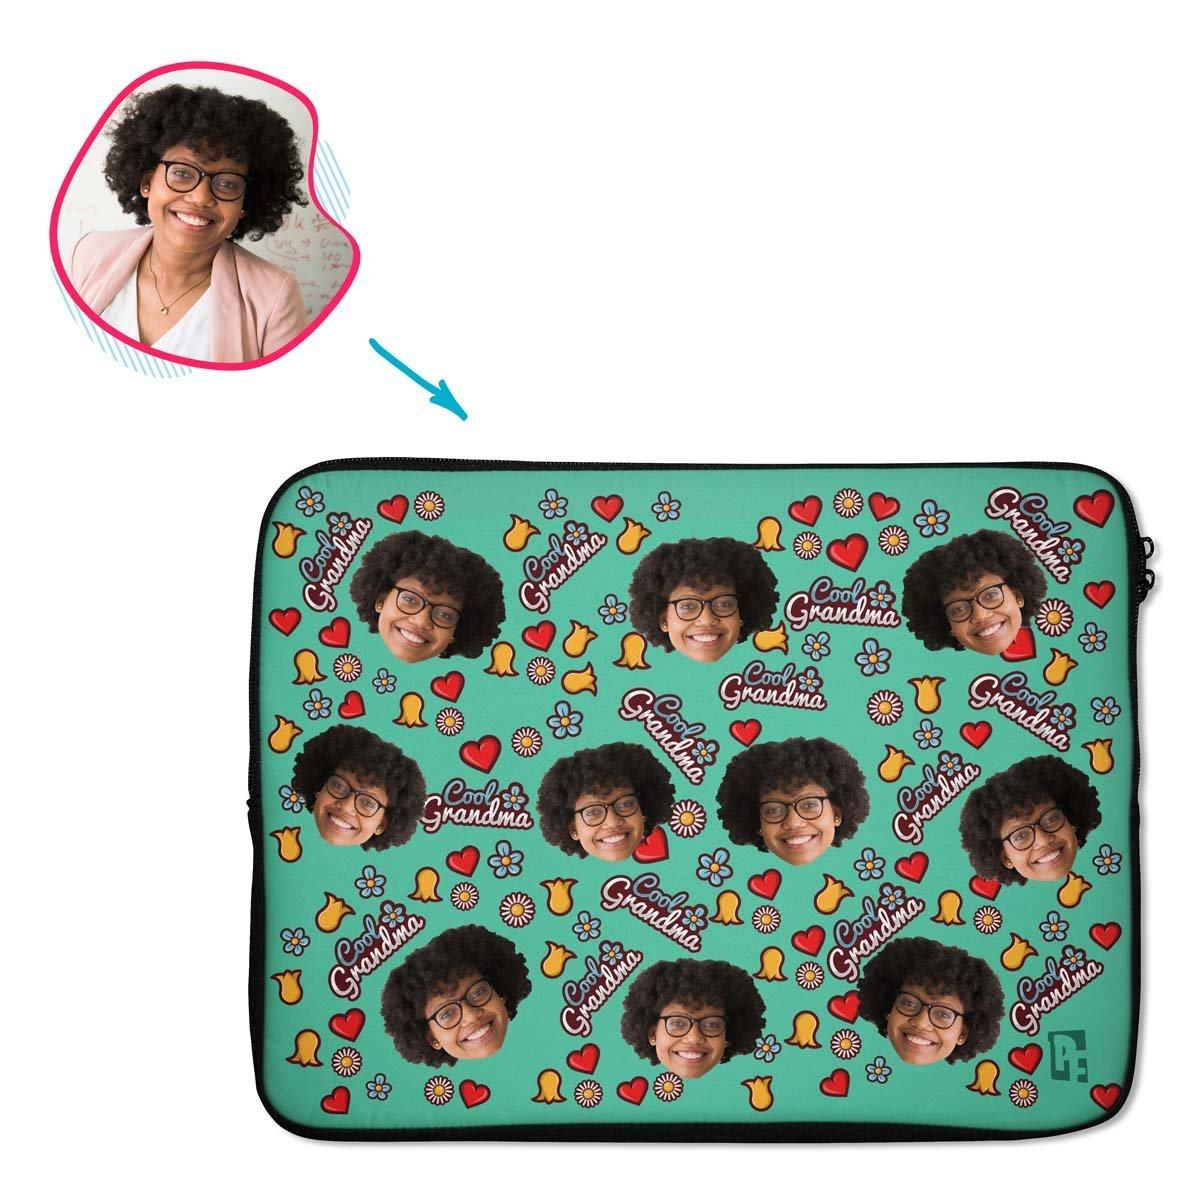 mint Cool Grandmother laptop sleeve personalized with photo of face printed on them